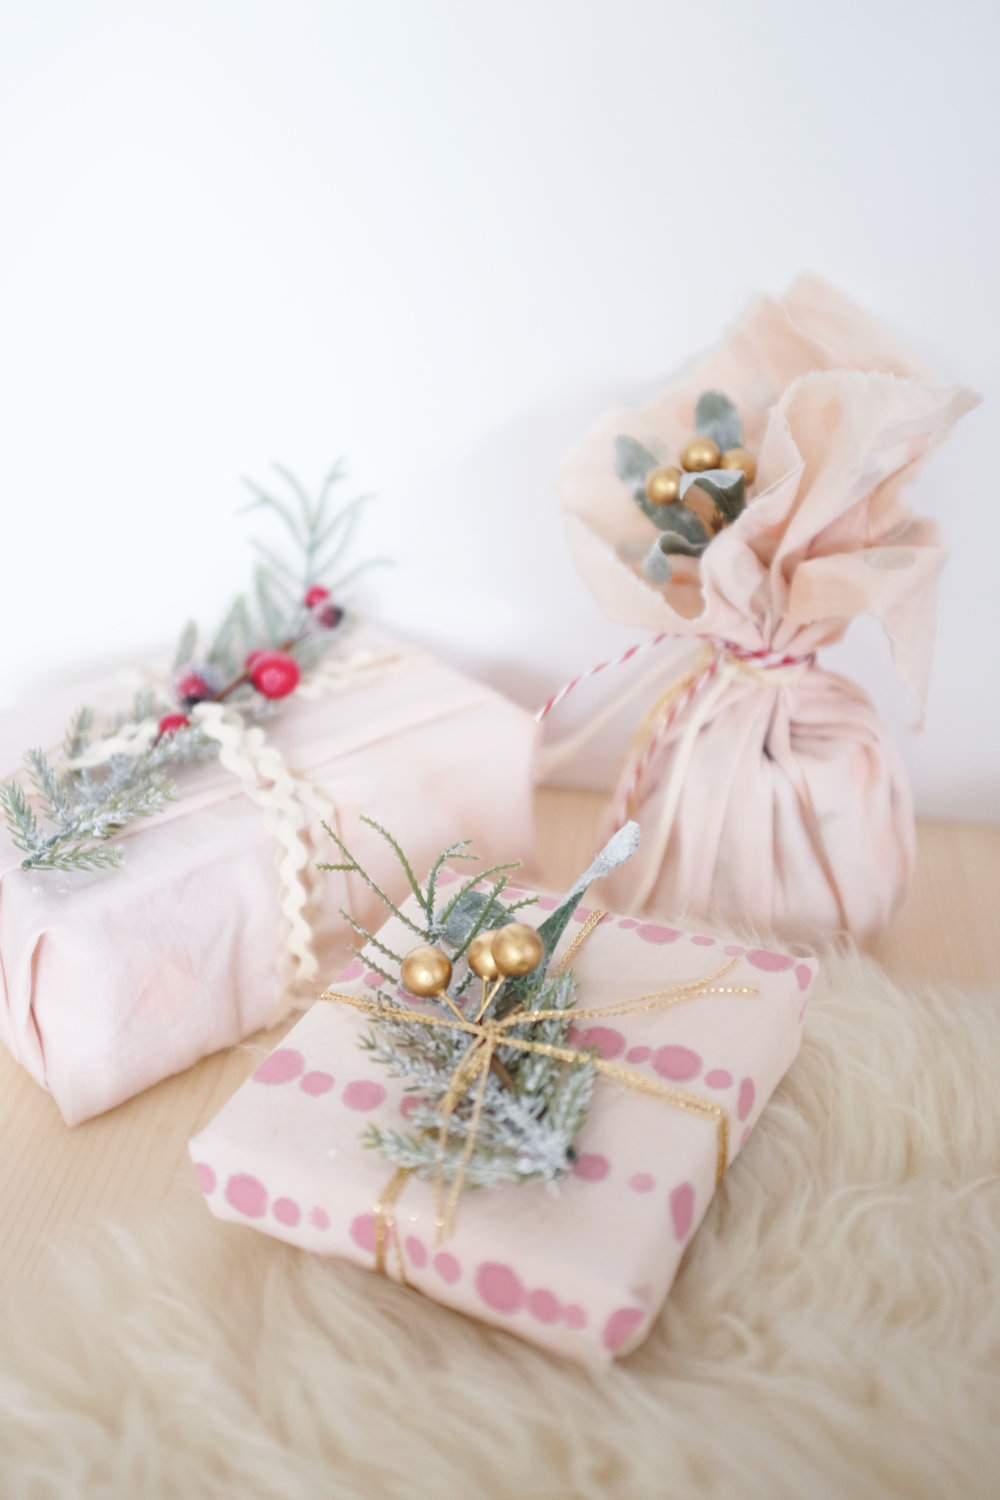 Gift_wrapping_00.JPG